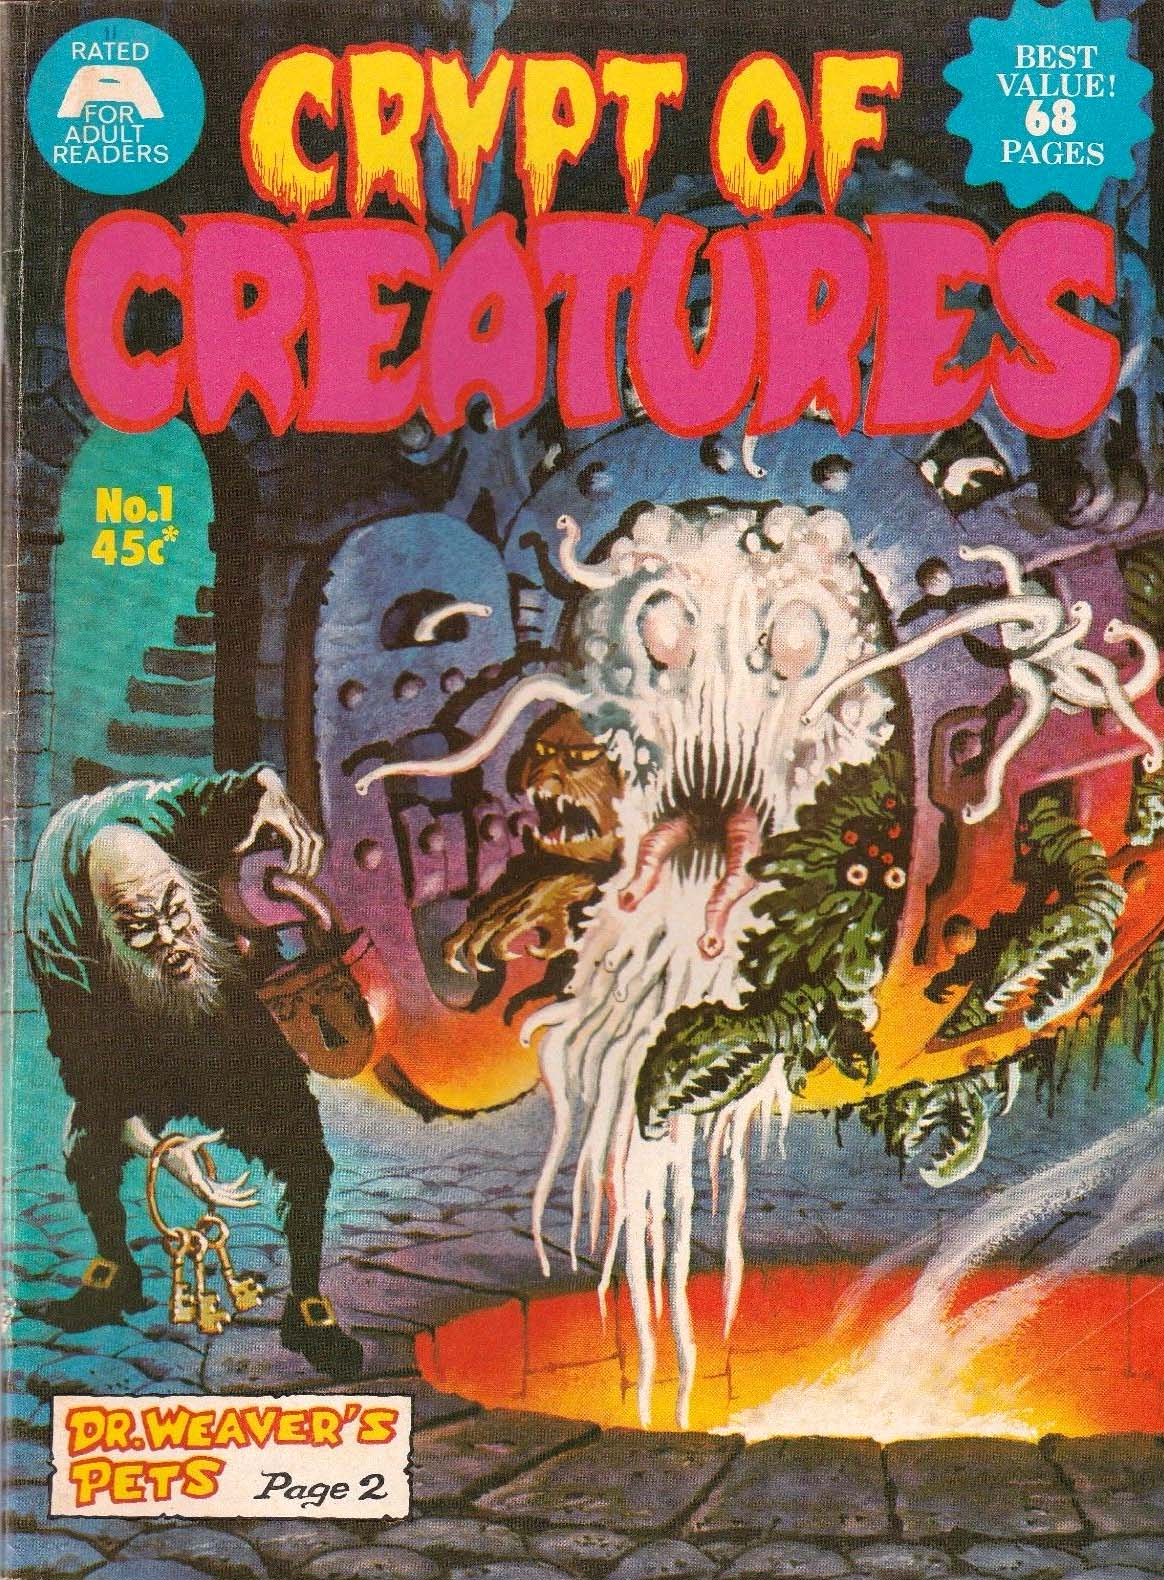 Crypt of Creatures